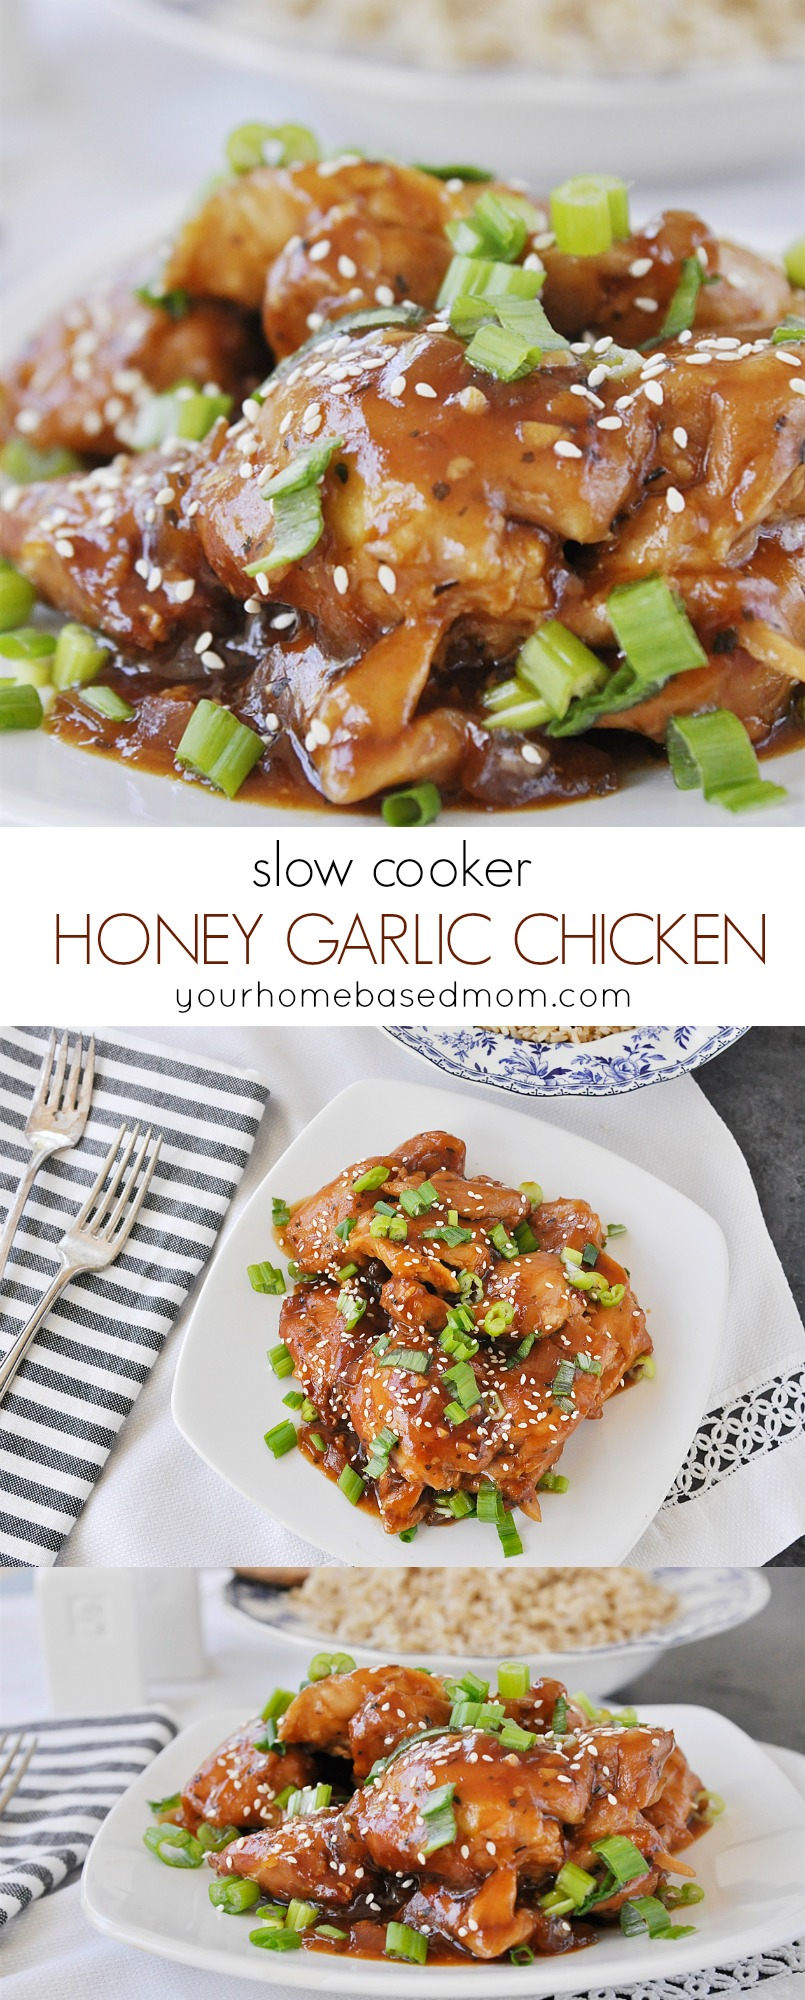 Slow Cooker Honey Garlic Chicken is the perfect way to get dinner on the table.  The slow cooker makes it so easy!